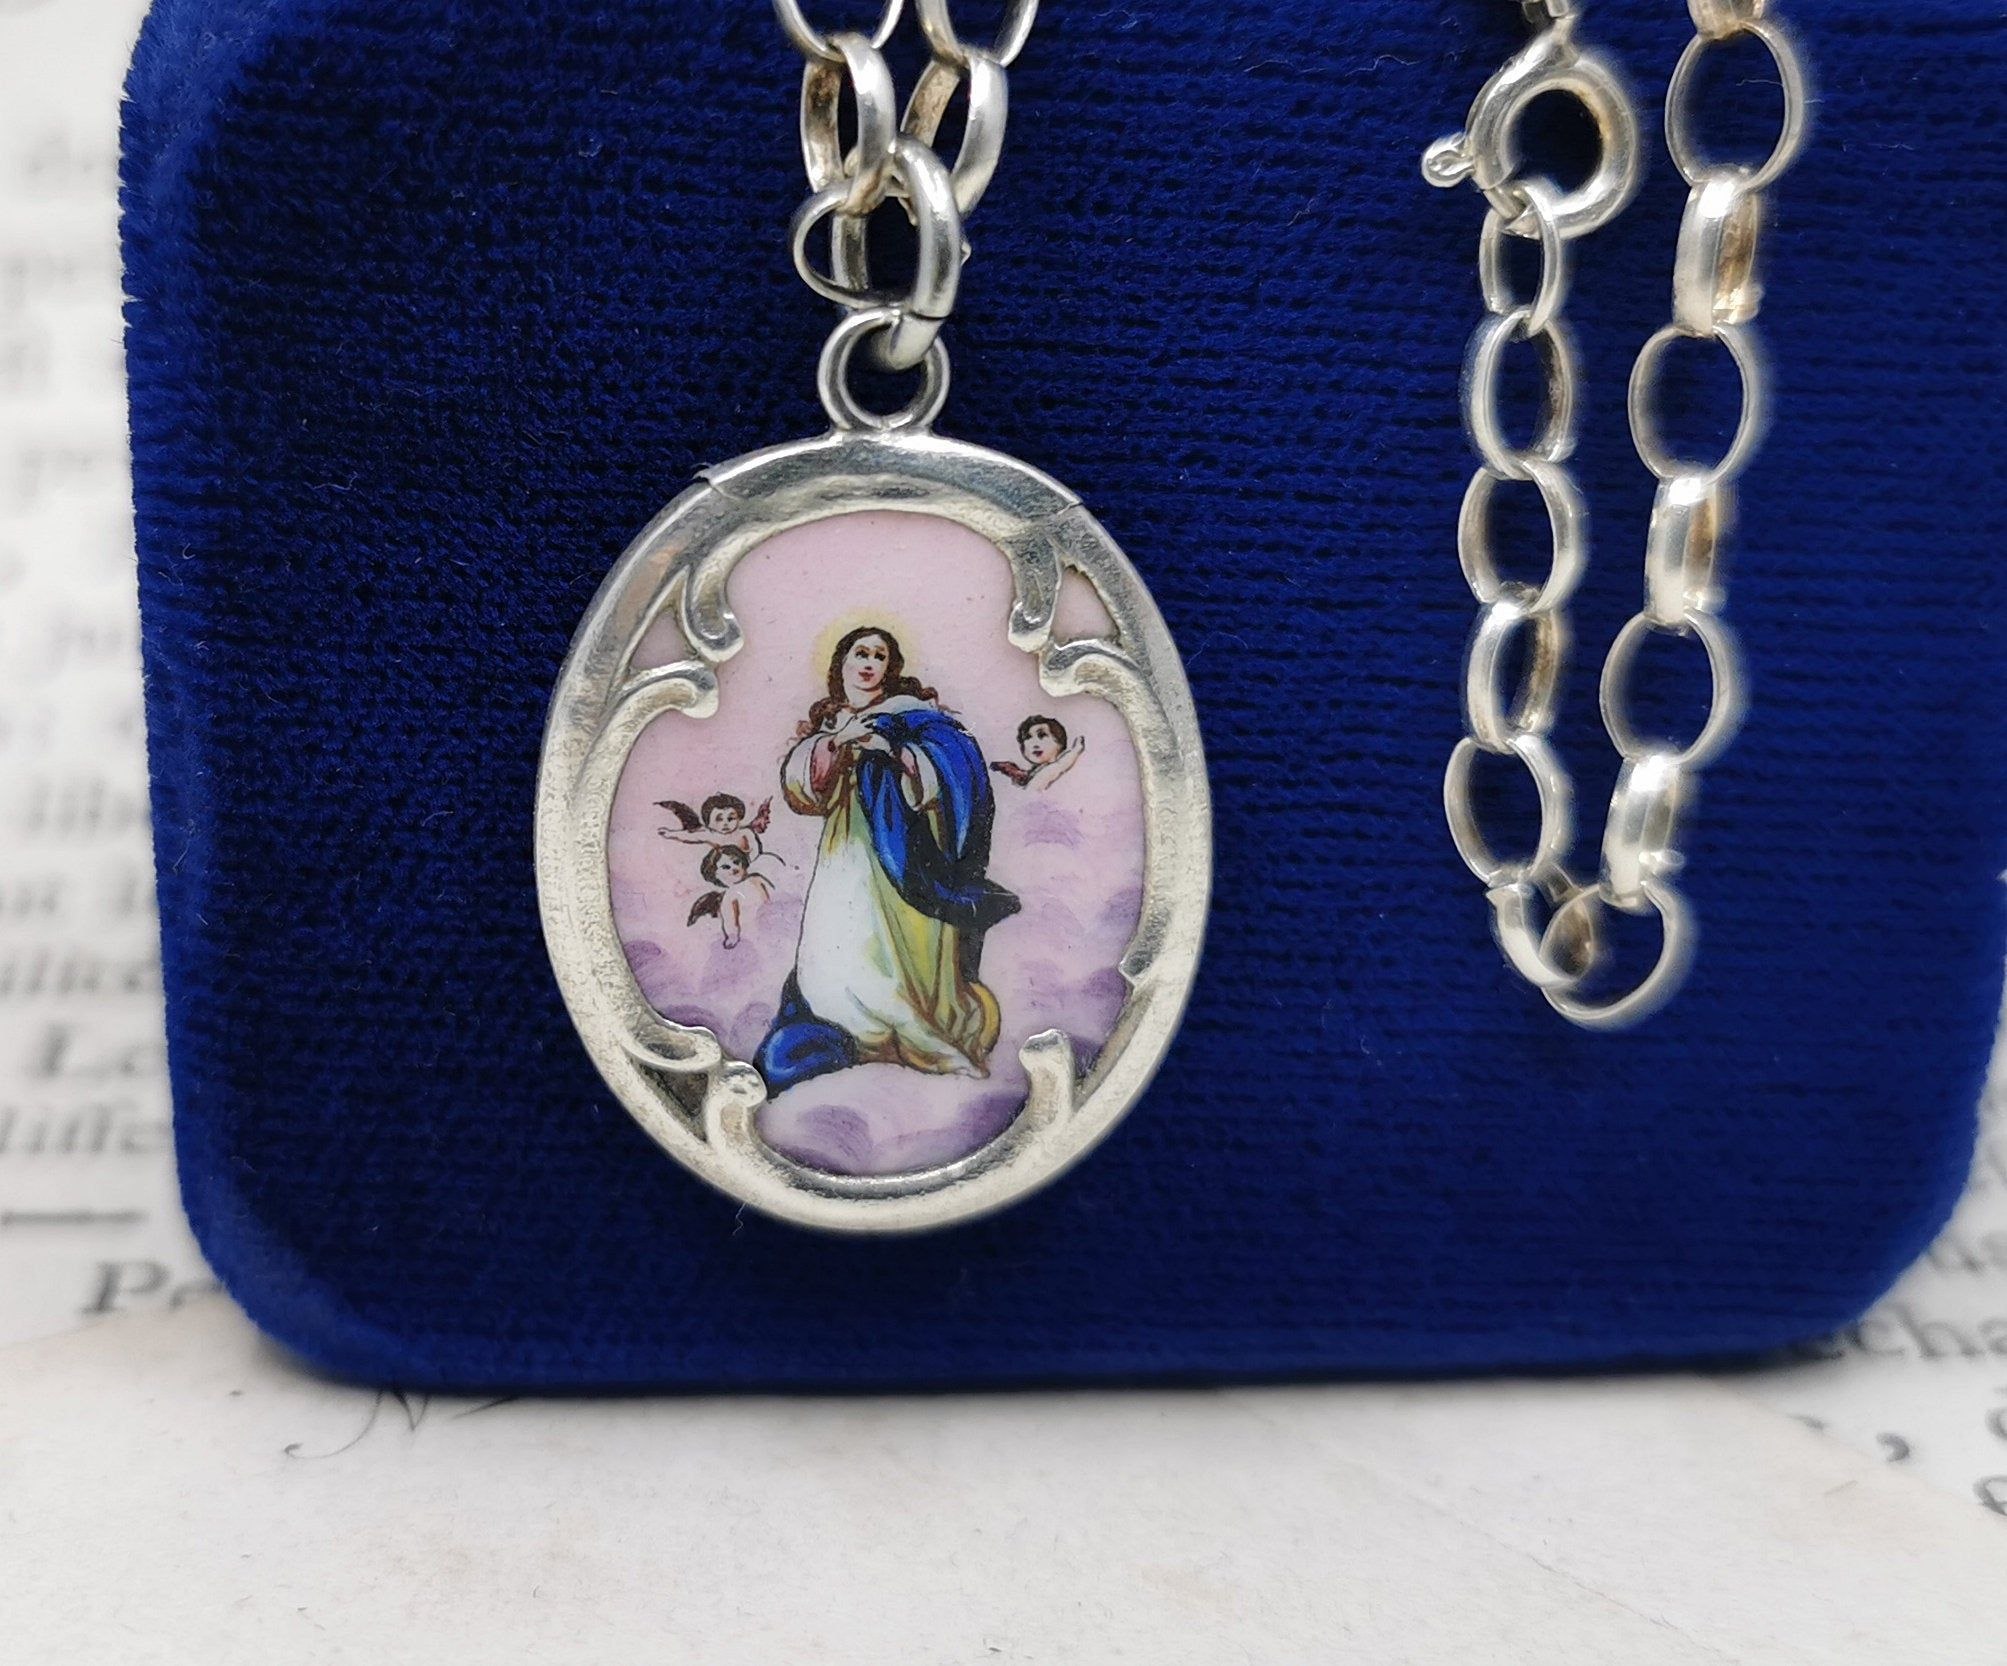 Vintage 925 Sterling Silver Virgin Mother Mary Religious Charm Pendant